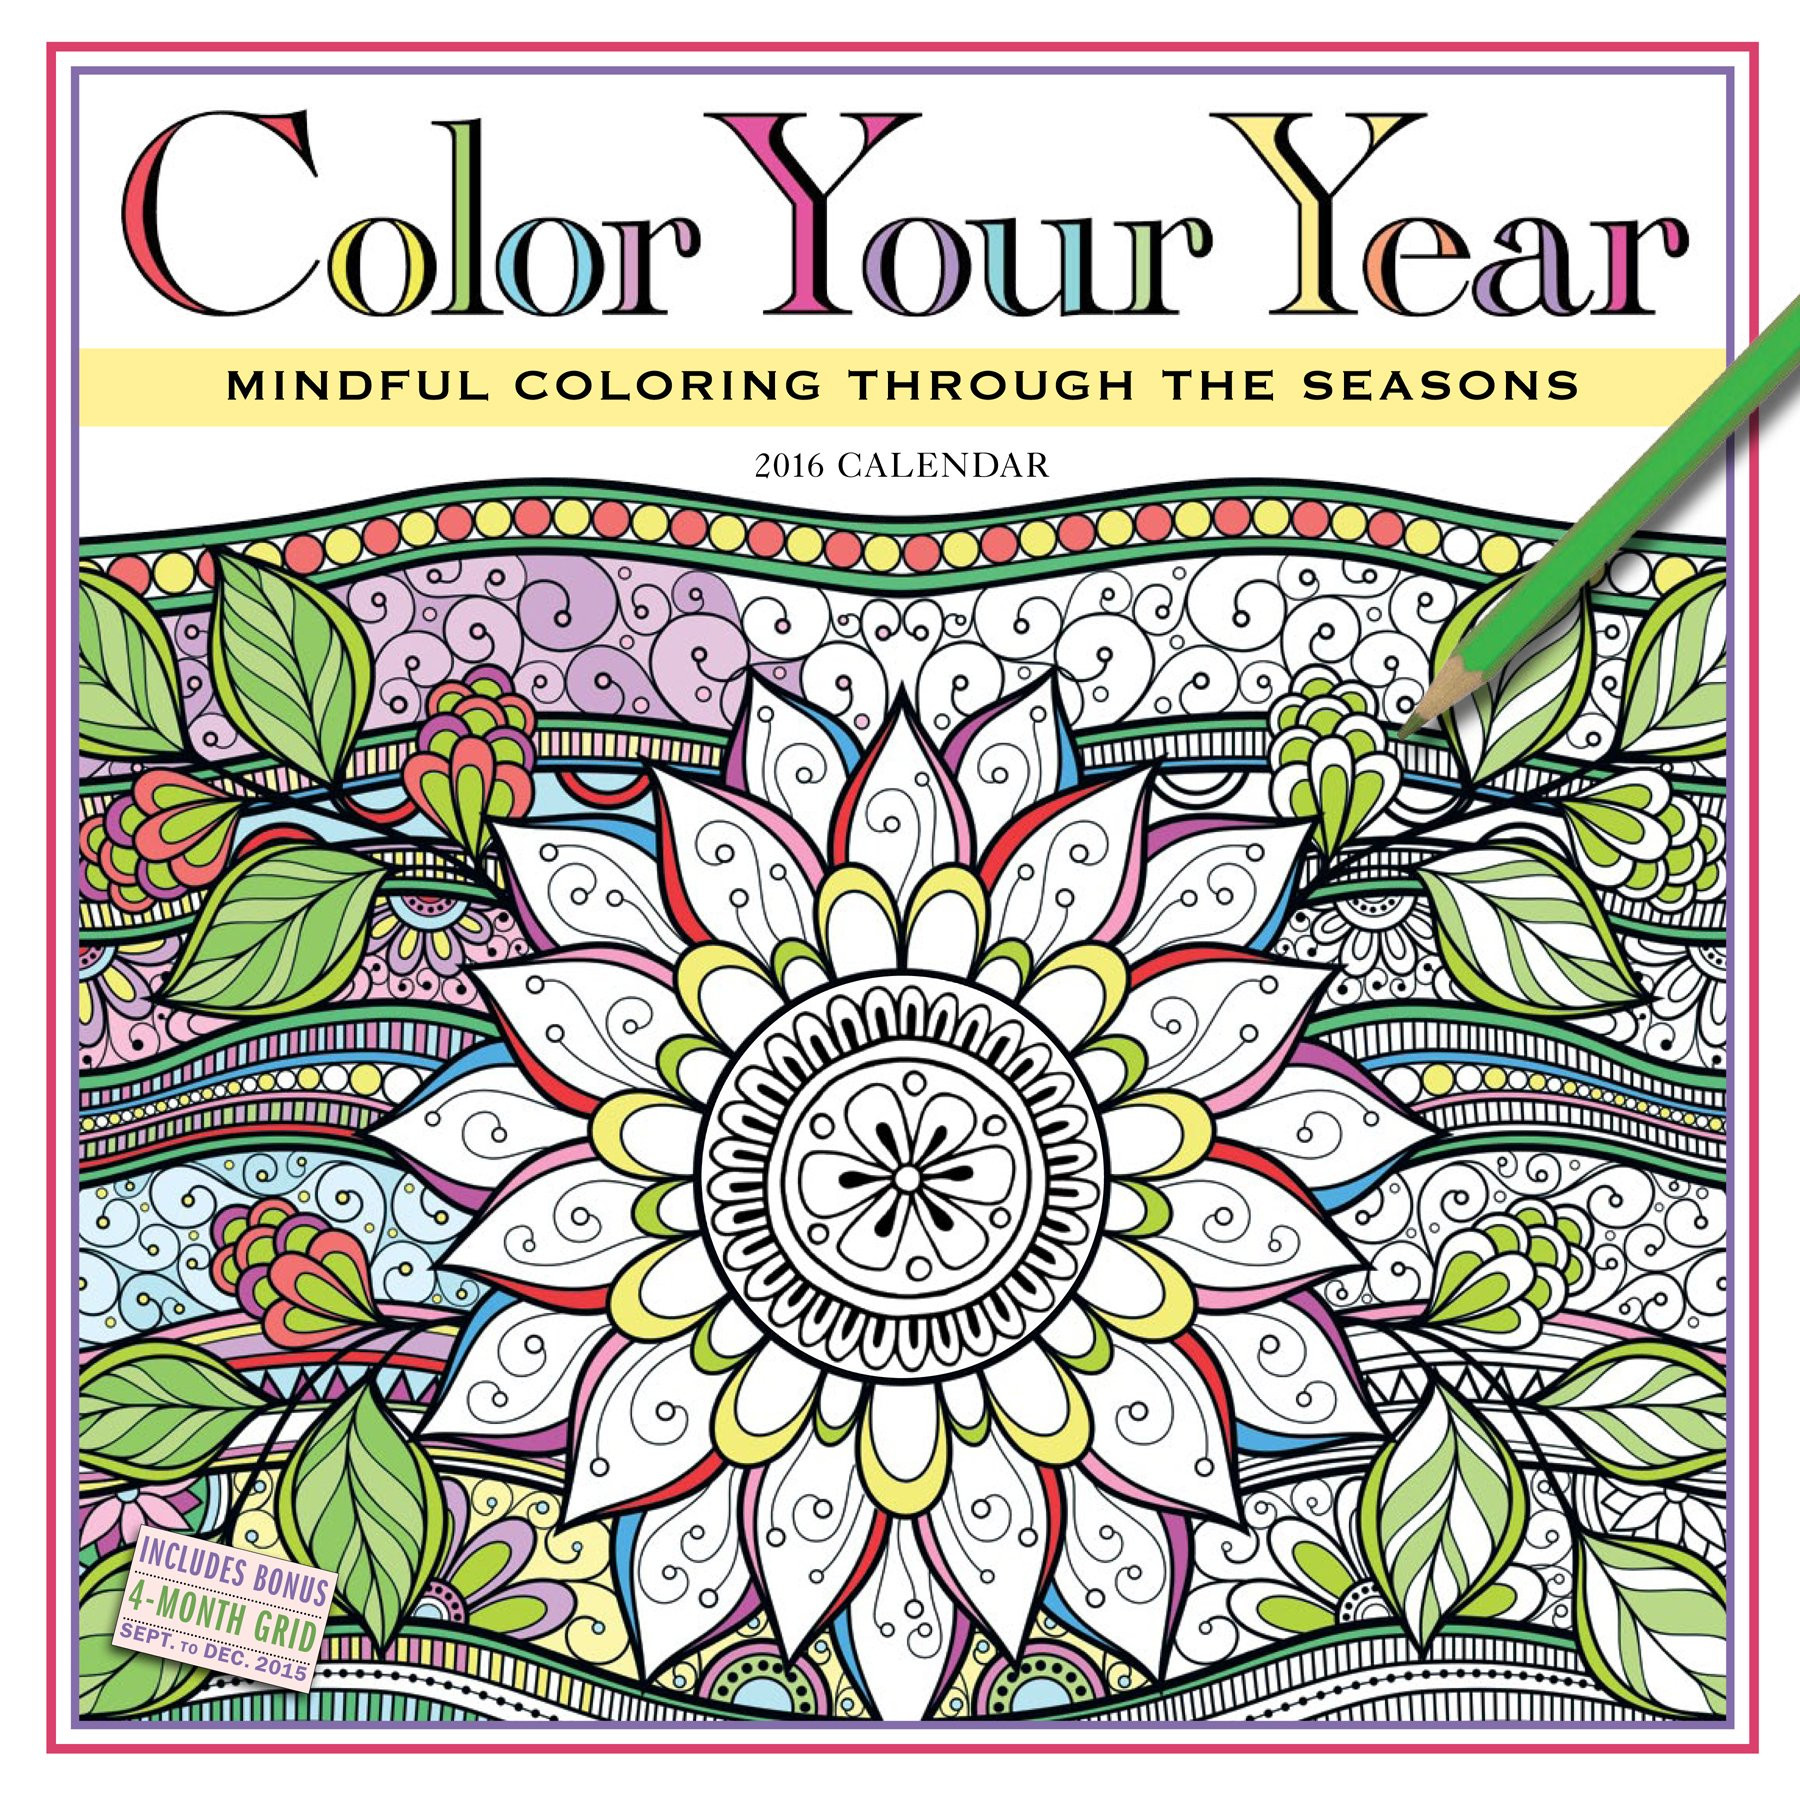 Coloring Book Calendars  Color Your Year 2016 Calendar for $9 27